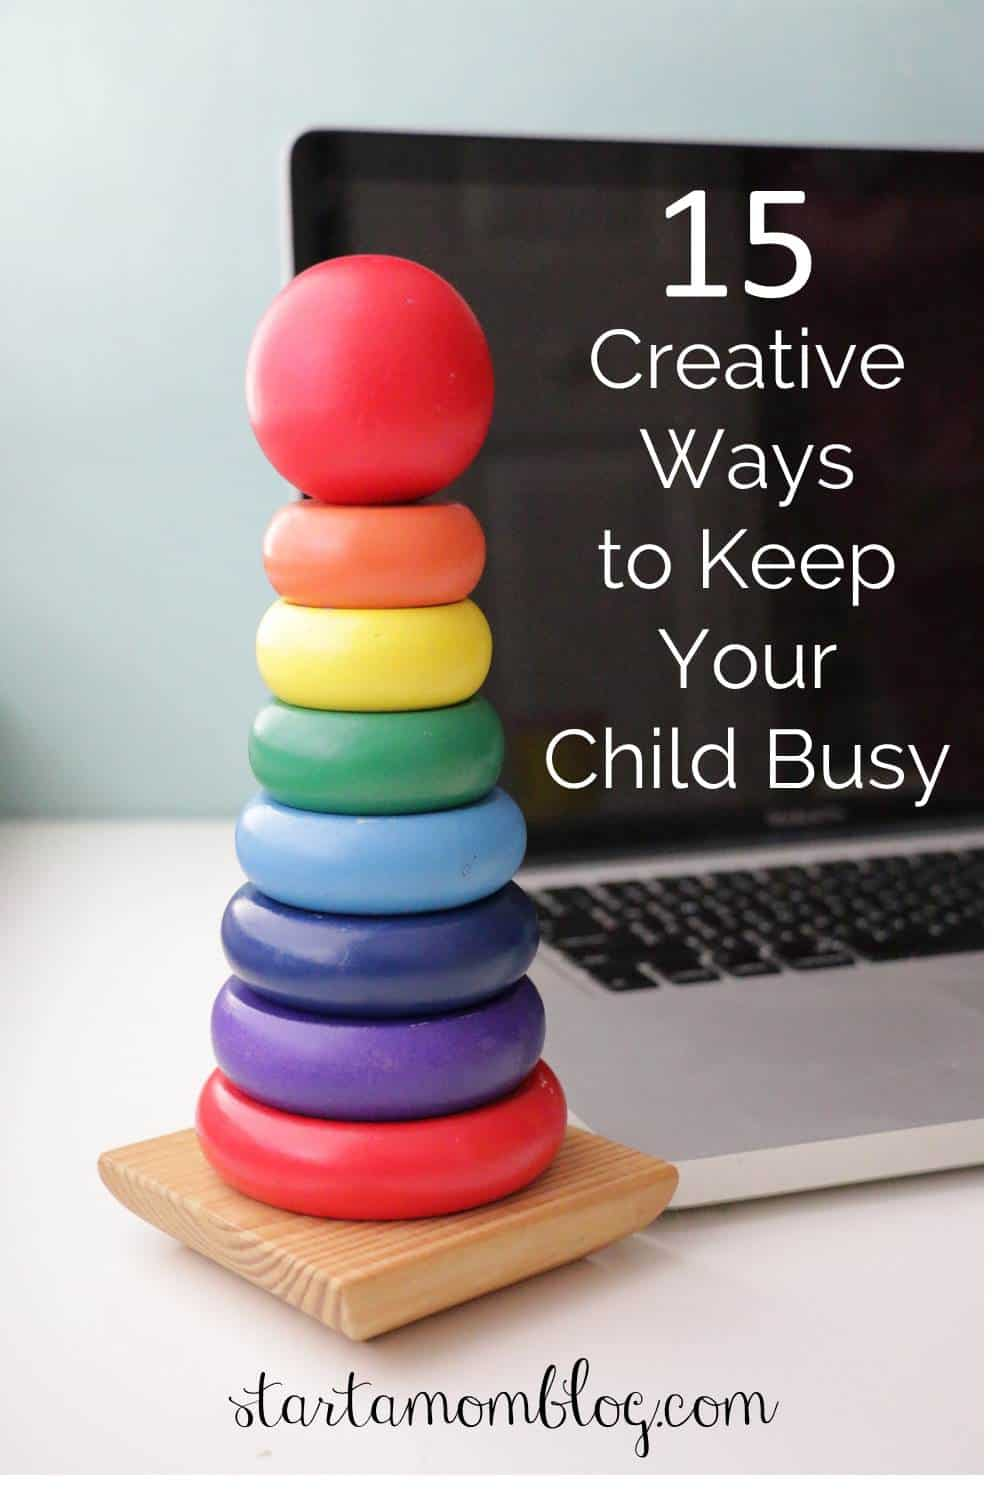 15 Creative Ways to Keep your Child Busy while you Blog www.startamomblog.com